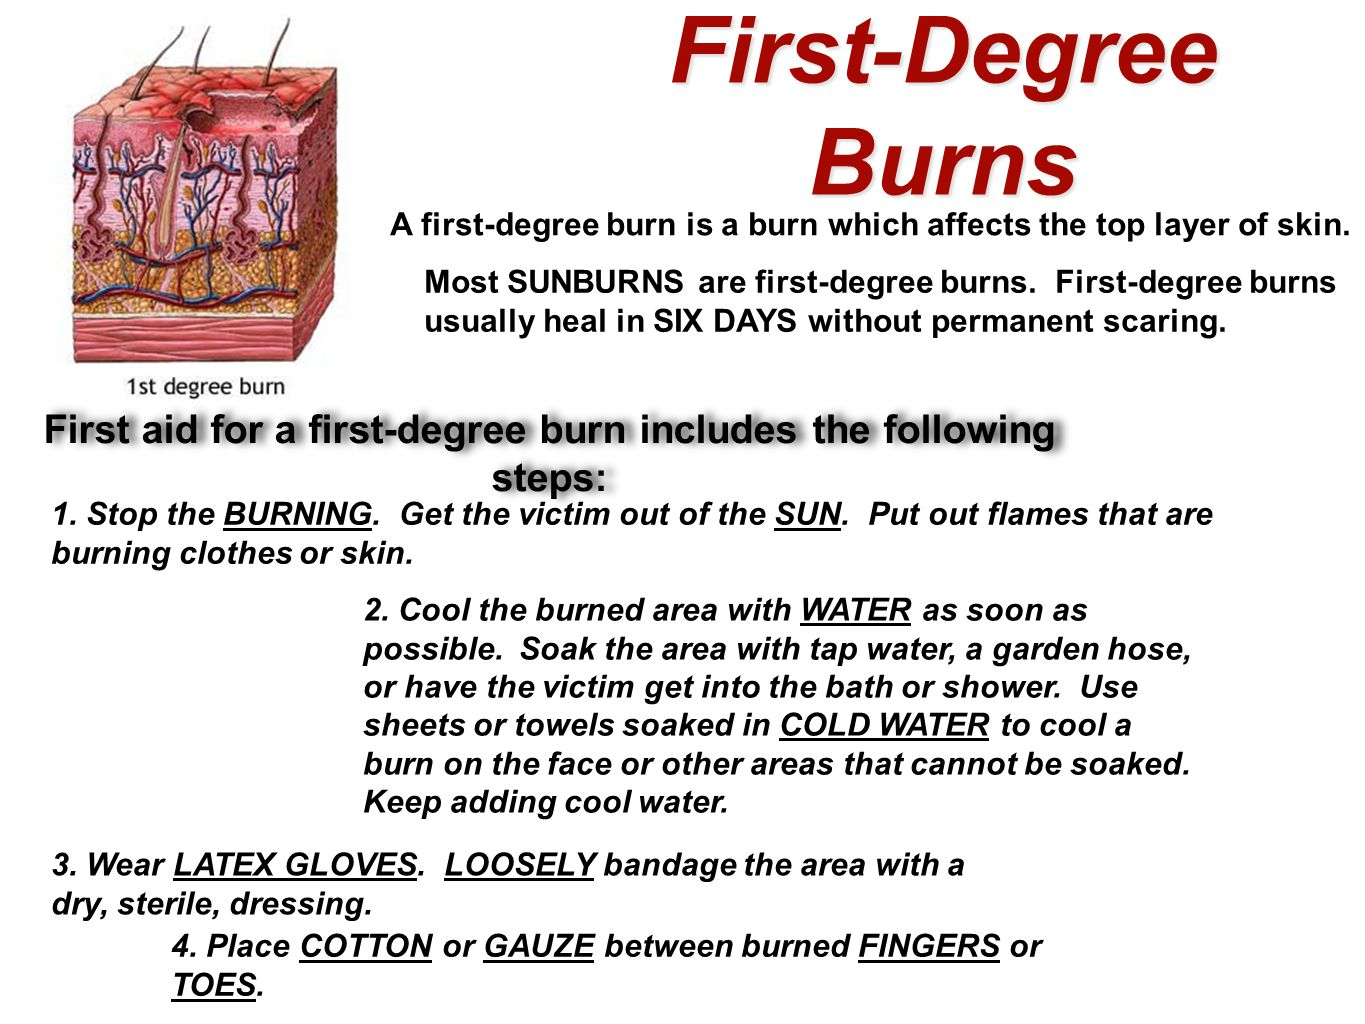 First-Degree Burns A first-degree burn is a burn which affects the top layer of skin. Most SUNBURNS are first-degree burns. First-degree burns usually